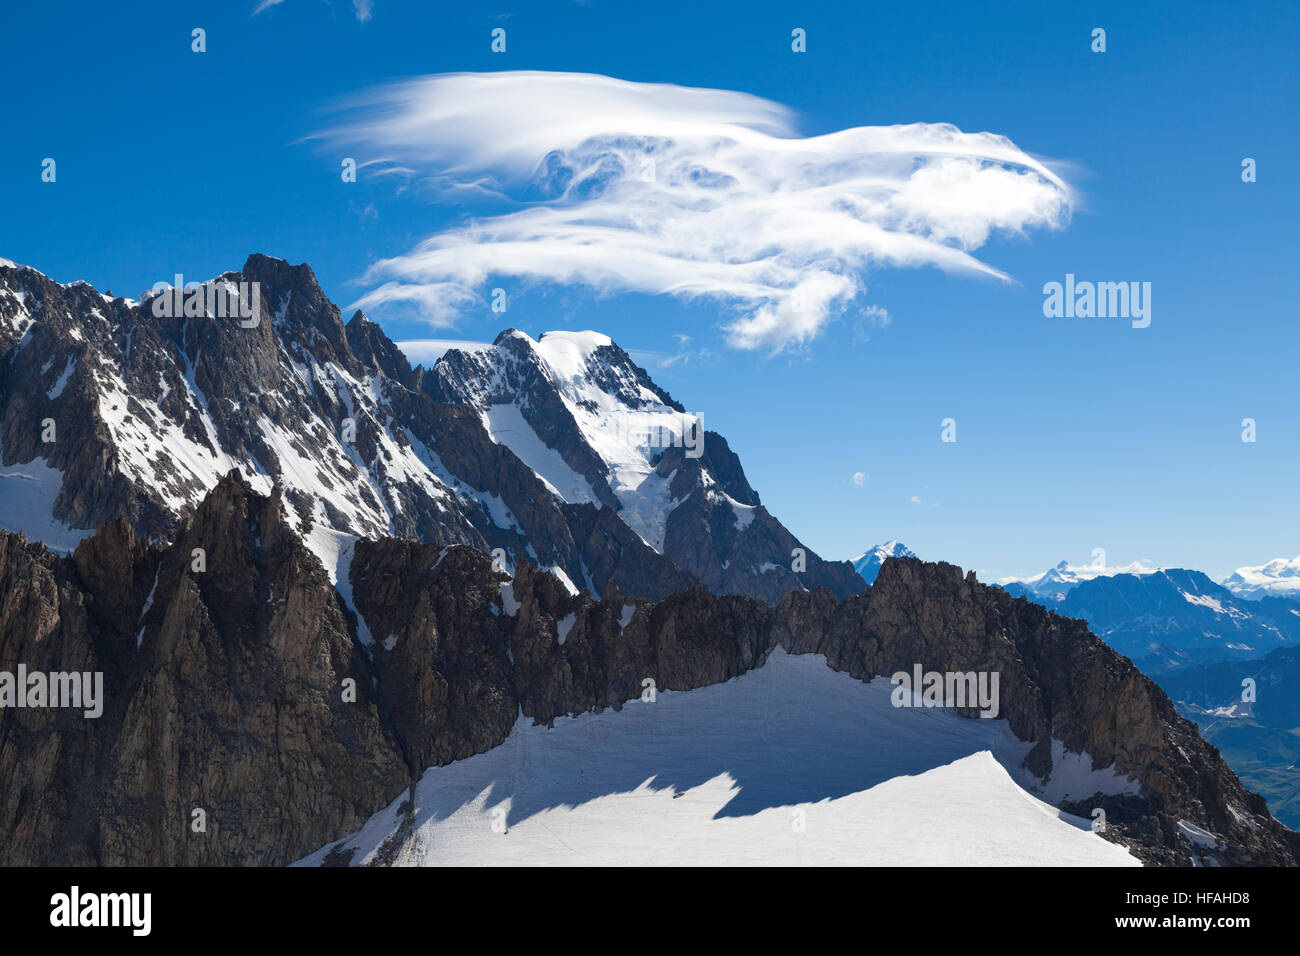 Panoramic view of Western alps with Giant's Tooth (Dent du Geant) from Helbronner roof of Europe in Aosta Valley Stock Photo